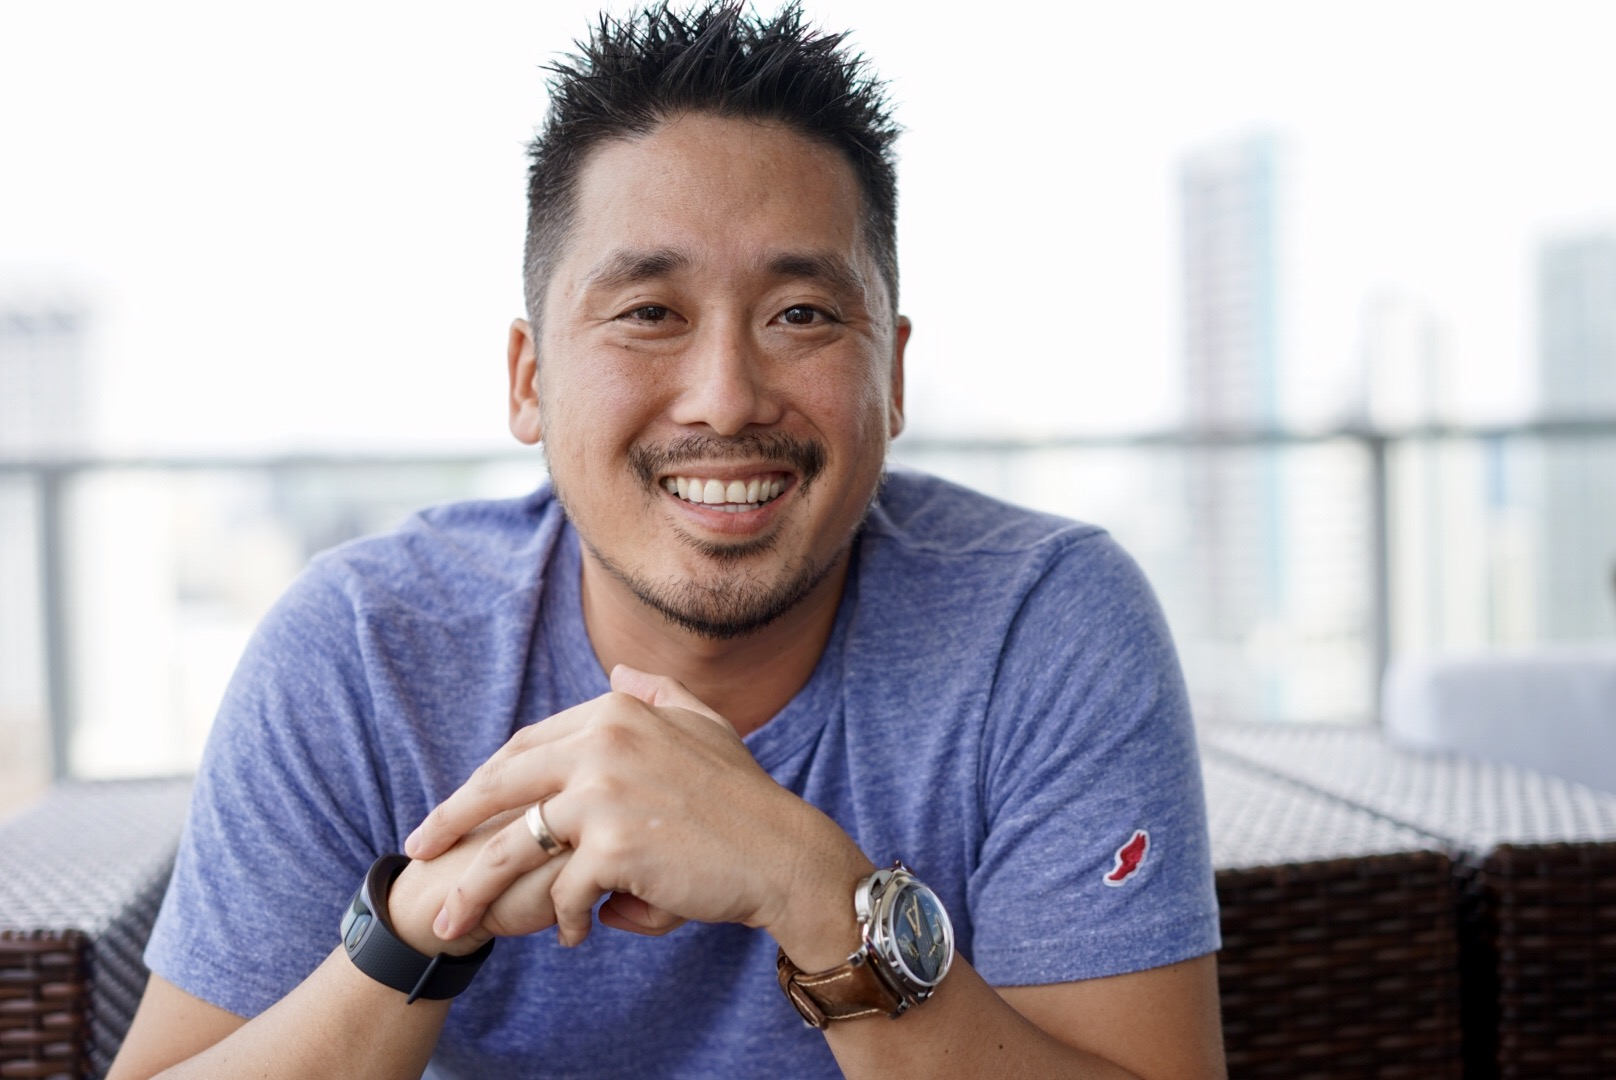 Jon Sugihara  has founded a number of companies in the US and Asia. Currently, he is the head of strategic partnership for the Next Billion Users group at Google. Previously, Jon held positions as Chief Product Officer at KODAKIT and RedMart. He first entered the Asian market as the founder of Perx in Singapore.